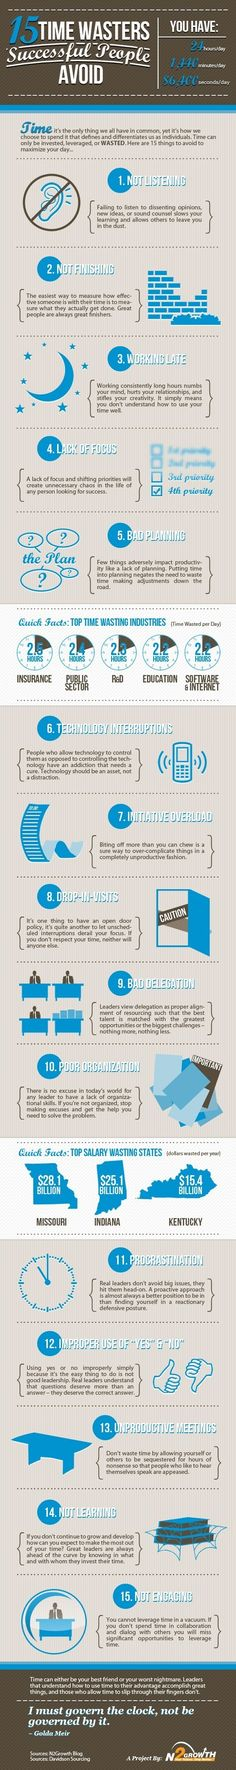 Infographic on how to become successful by avoiding 15 time wasting techniques and stuffs online for creative rockstar company and business